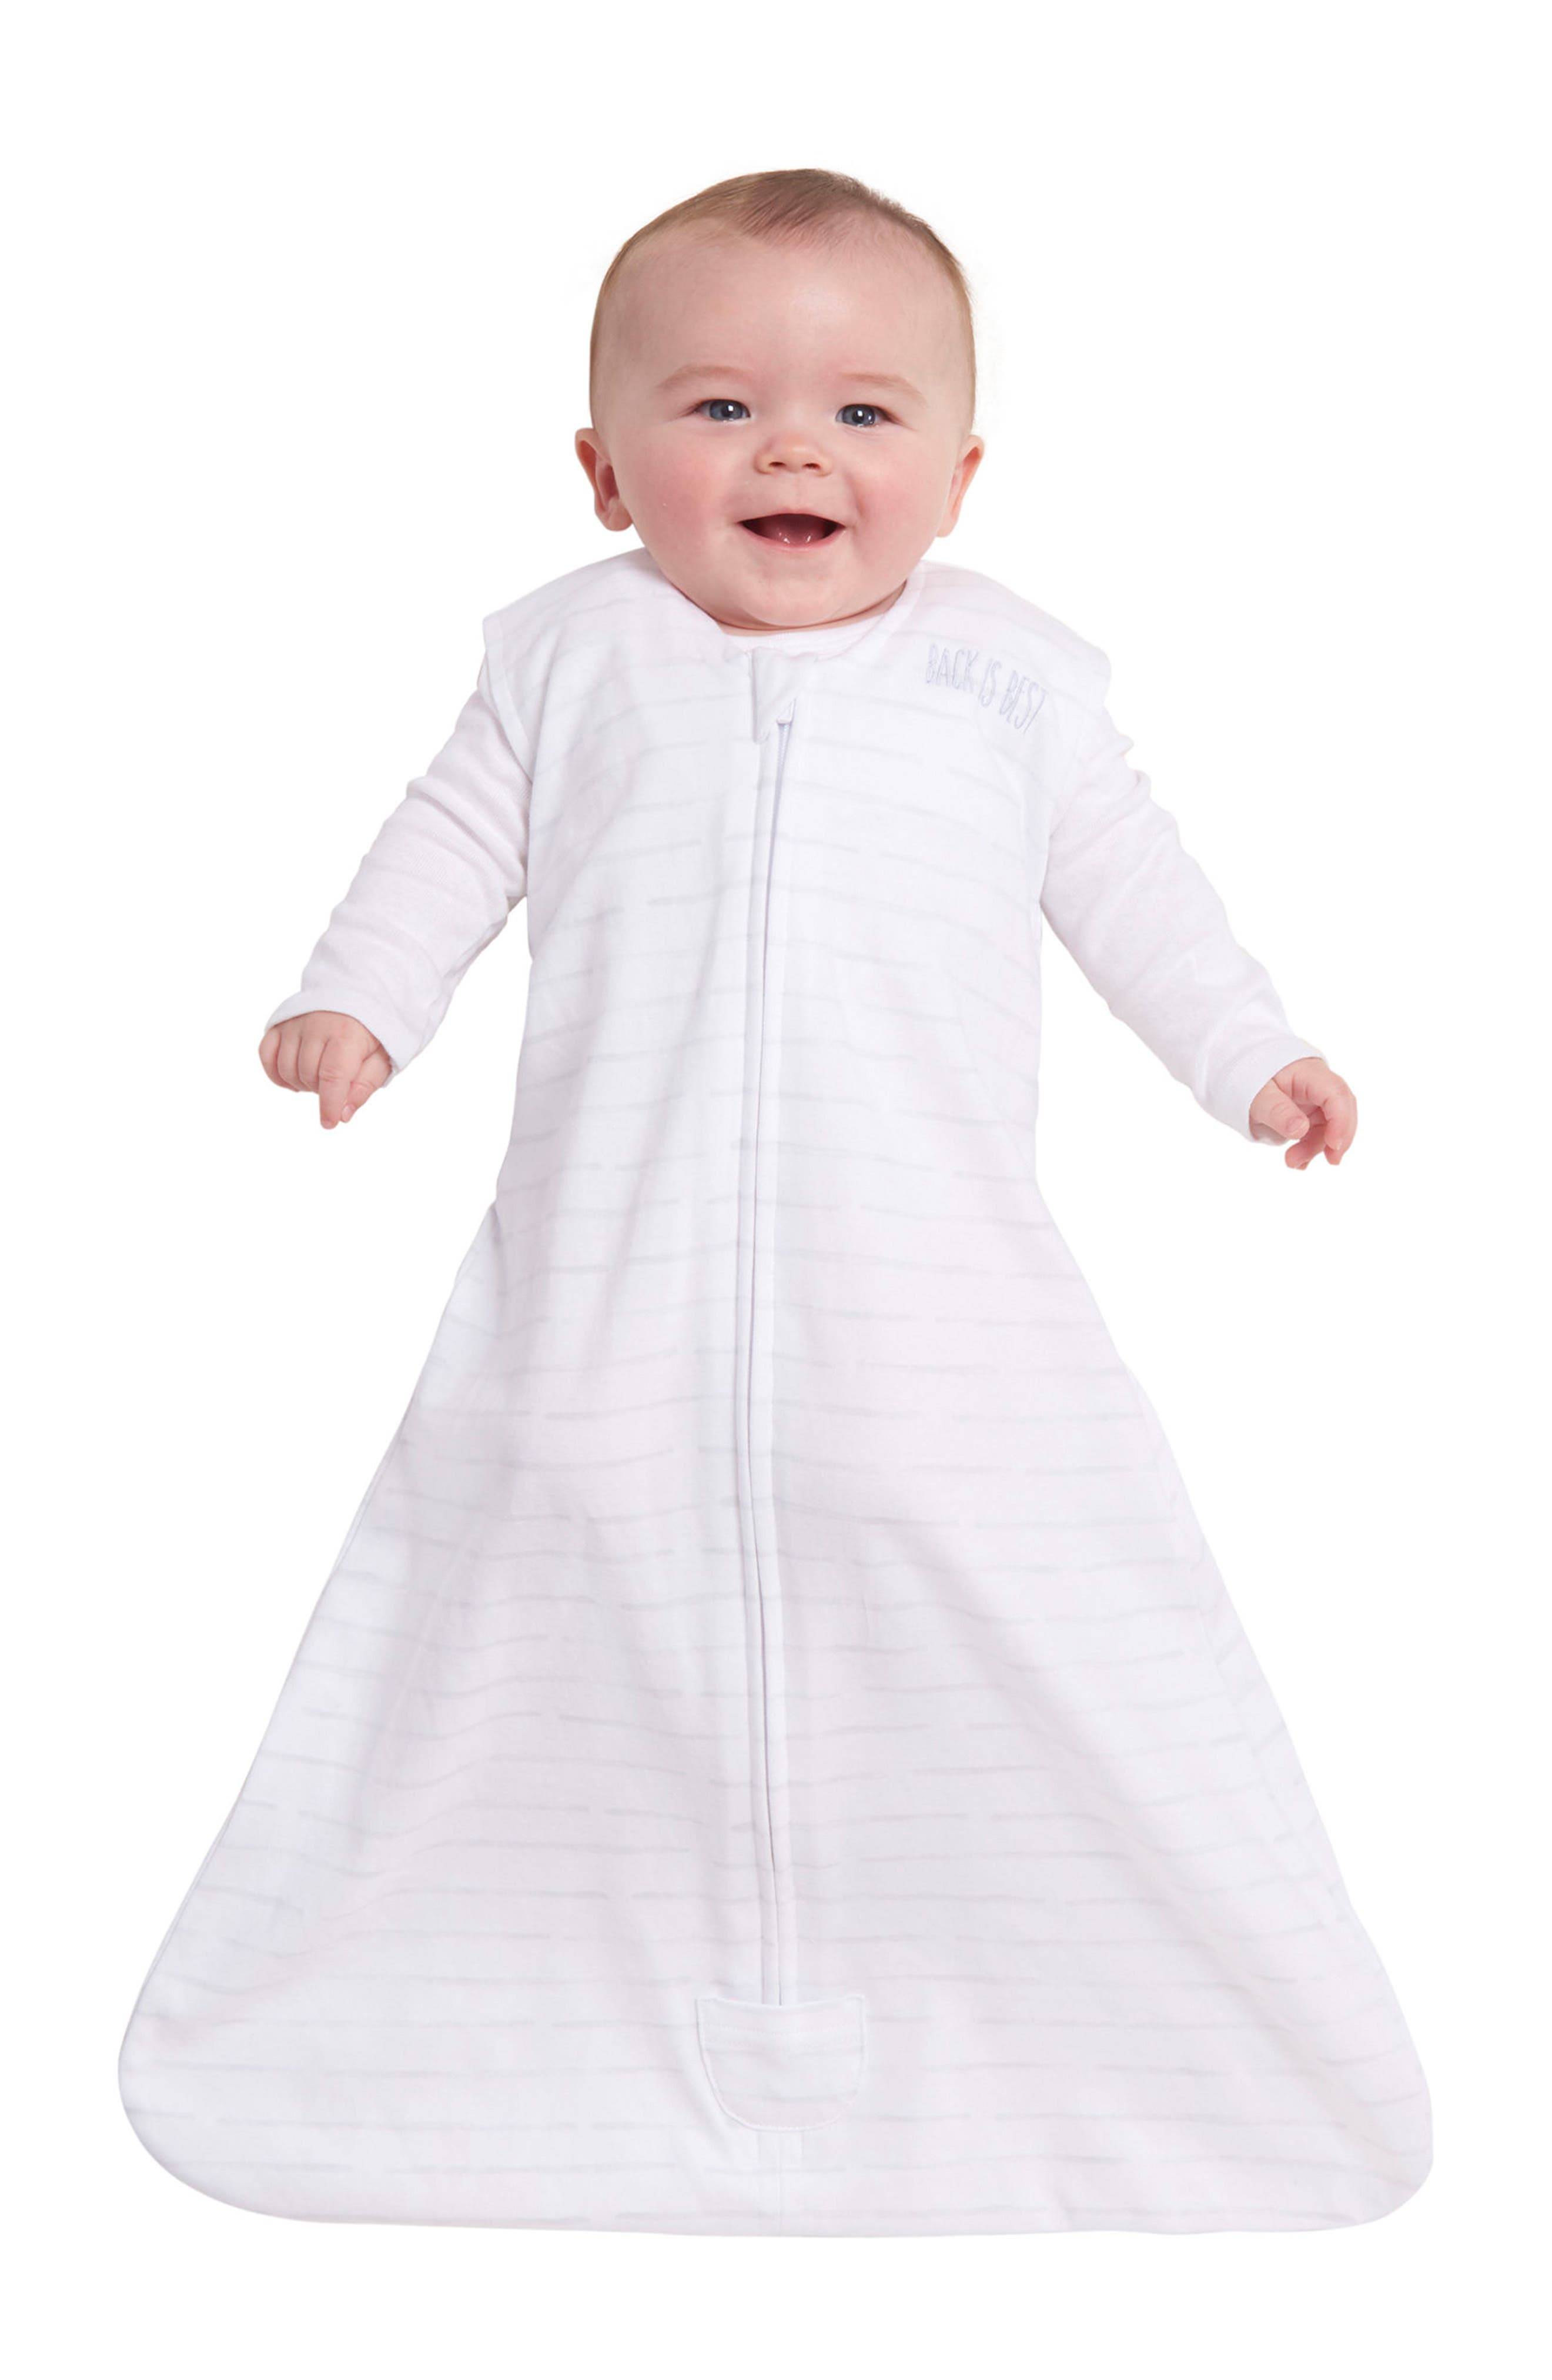 Platinum Series SleepSack<sup>™</sup> Swaddle & SleepSack<sup>™</sup> Set,                             Alternate thumbnail 9, color,                             GREY TINY CIRCLE AND LINES